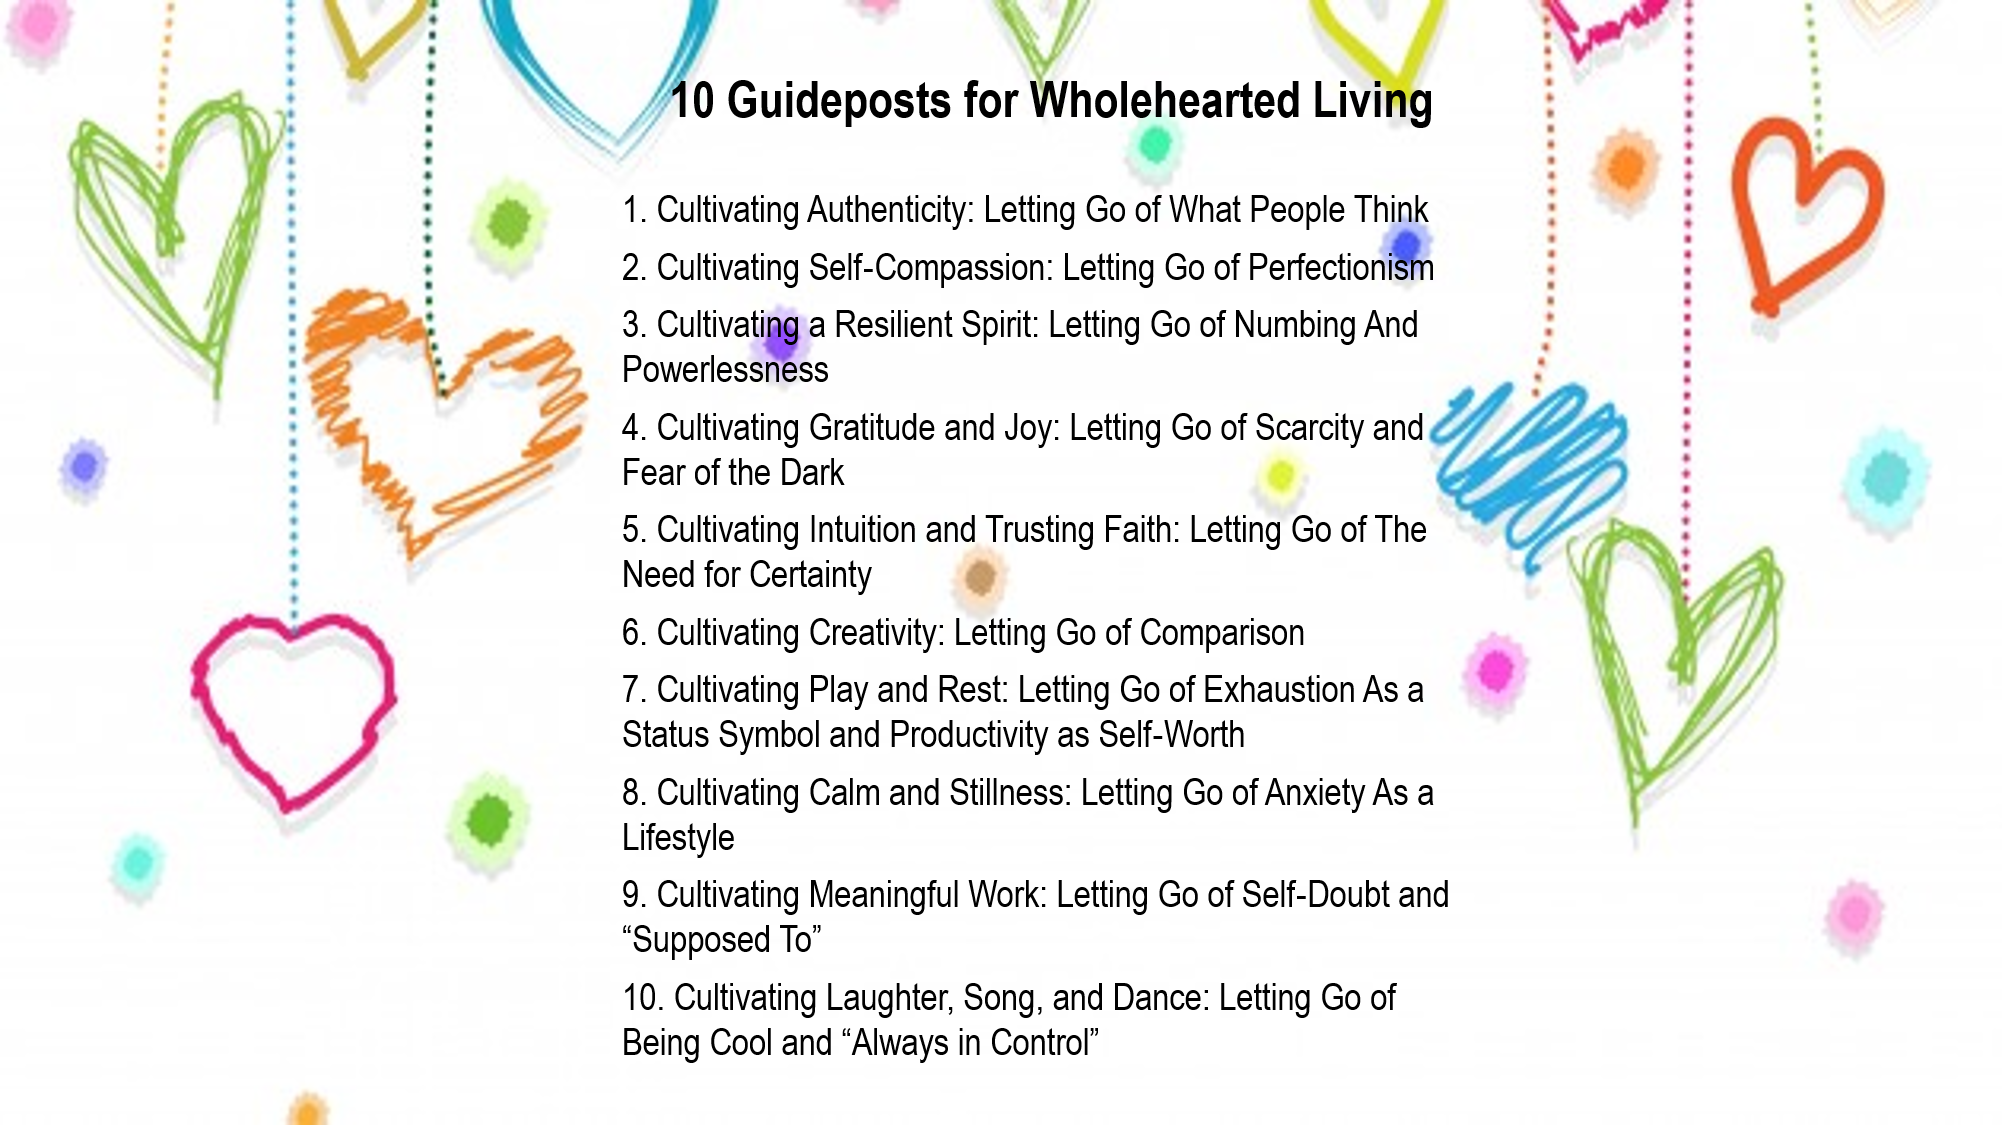 10 Guideposts